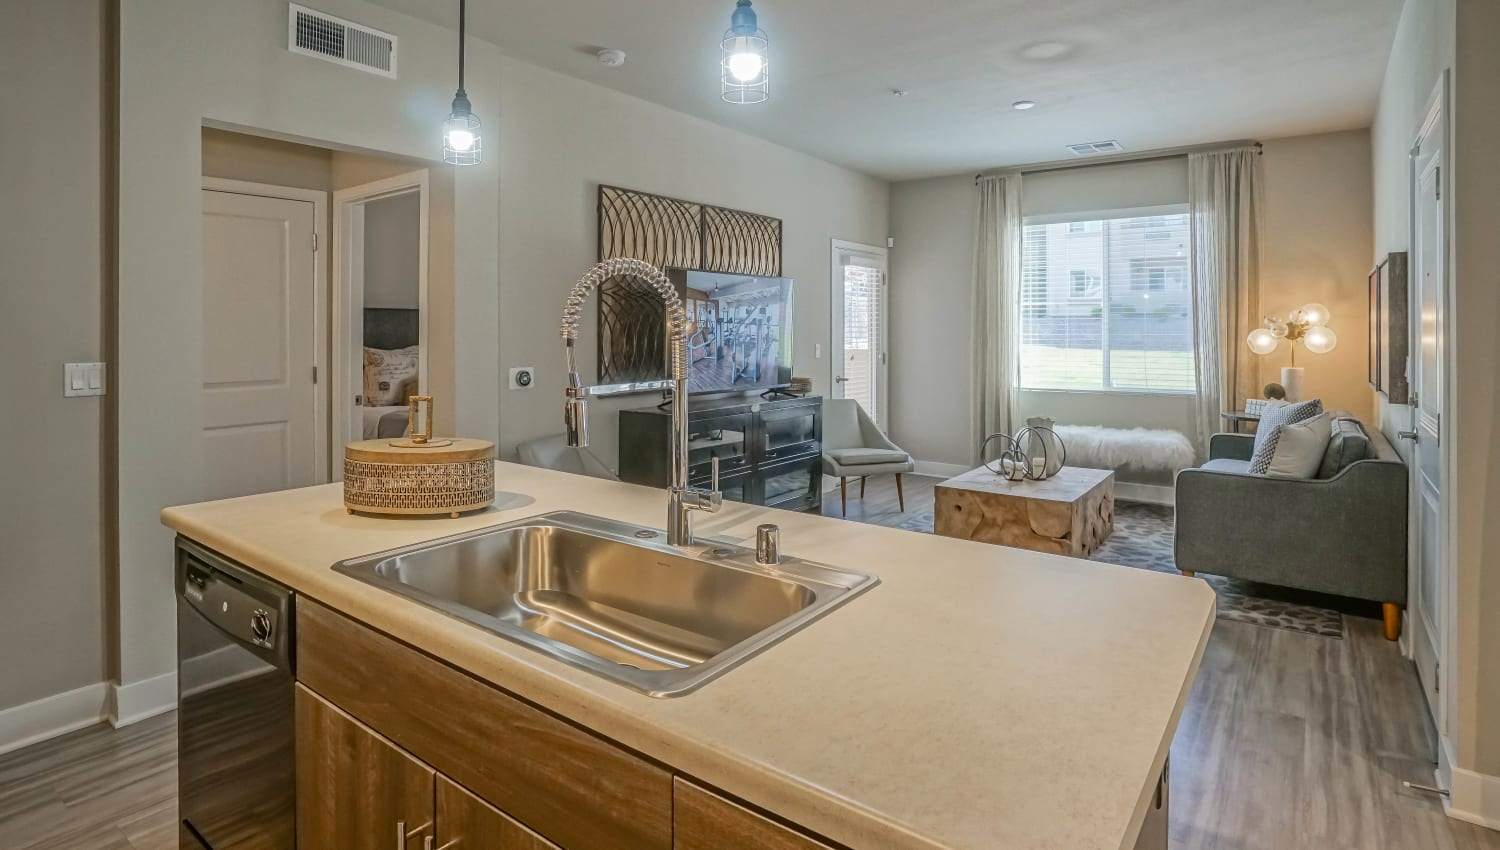 Model apartment's kitchen with quartz countertops at Olympus Northpoint in Albuquerque, New Mexico